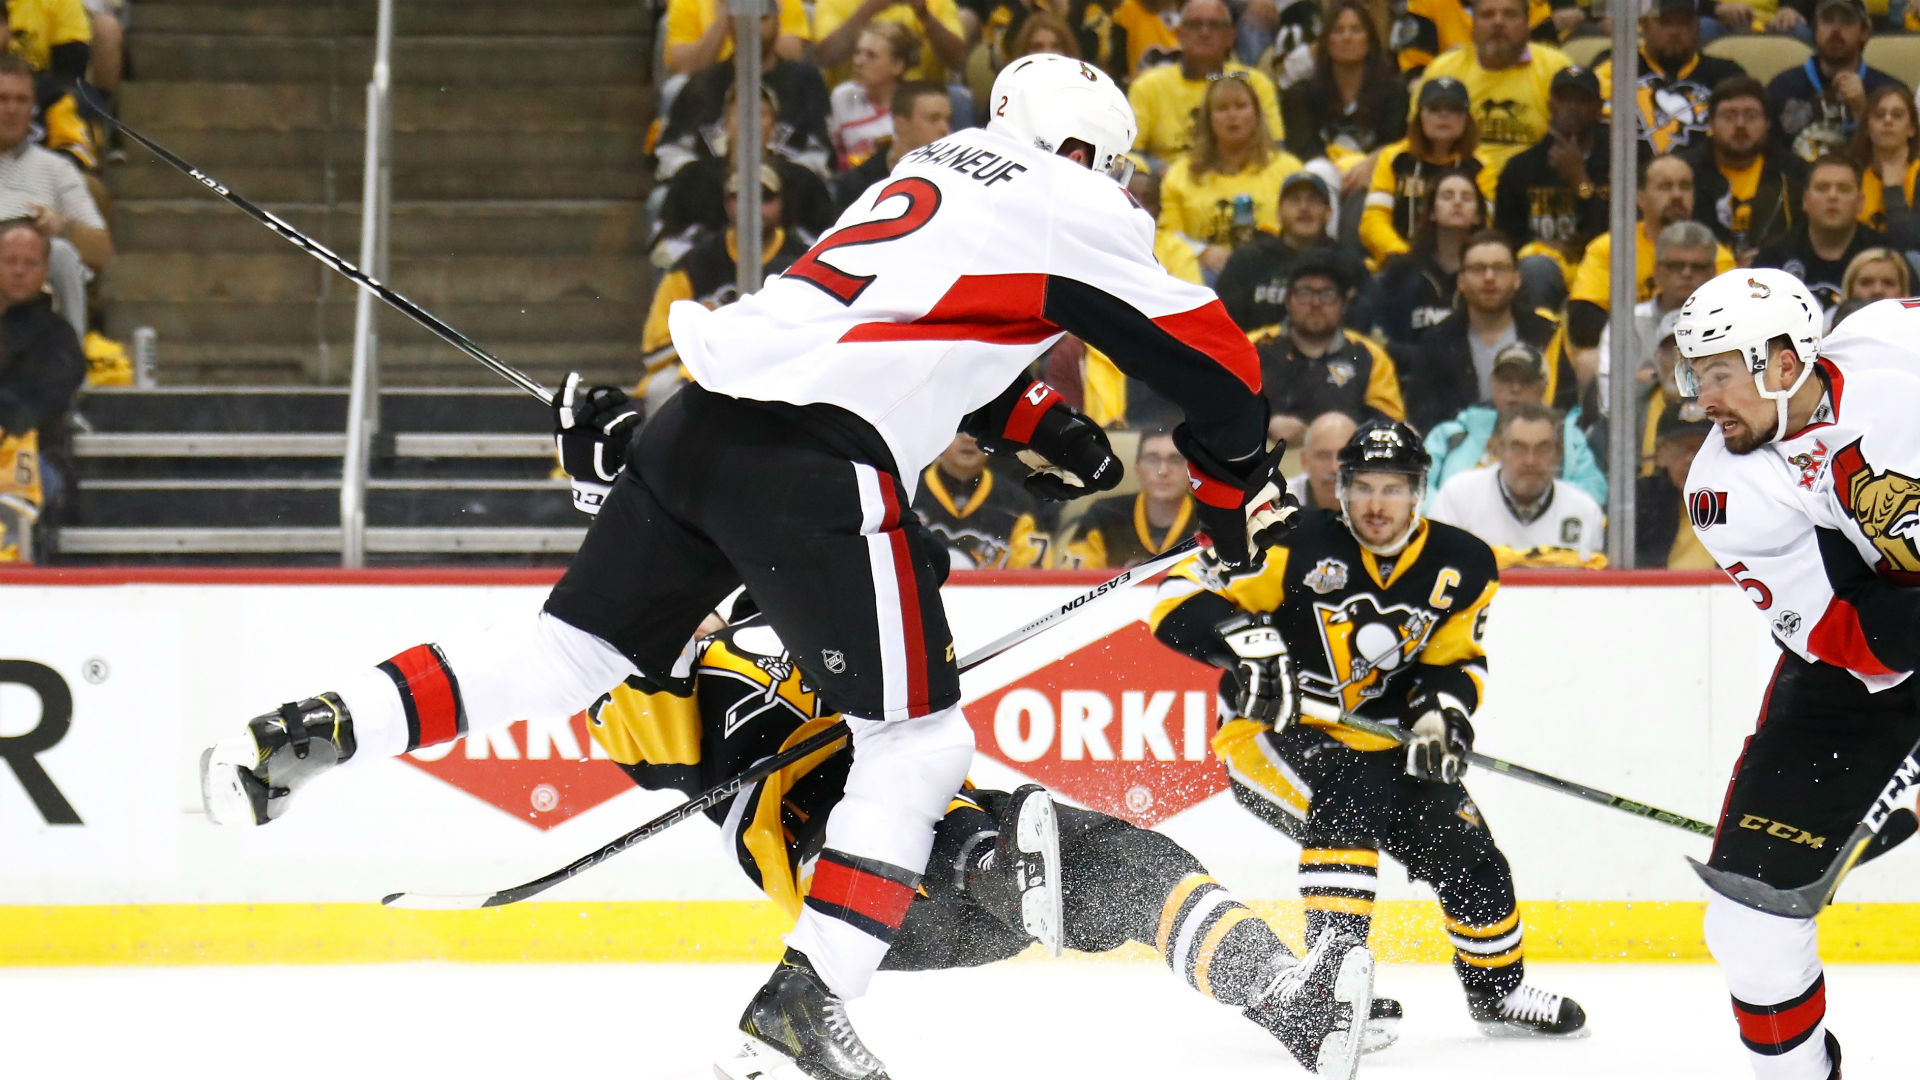 Rust, Schultz, Hornqvist out for Penguins for Game 3 vs Sens